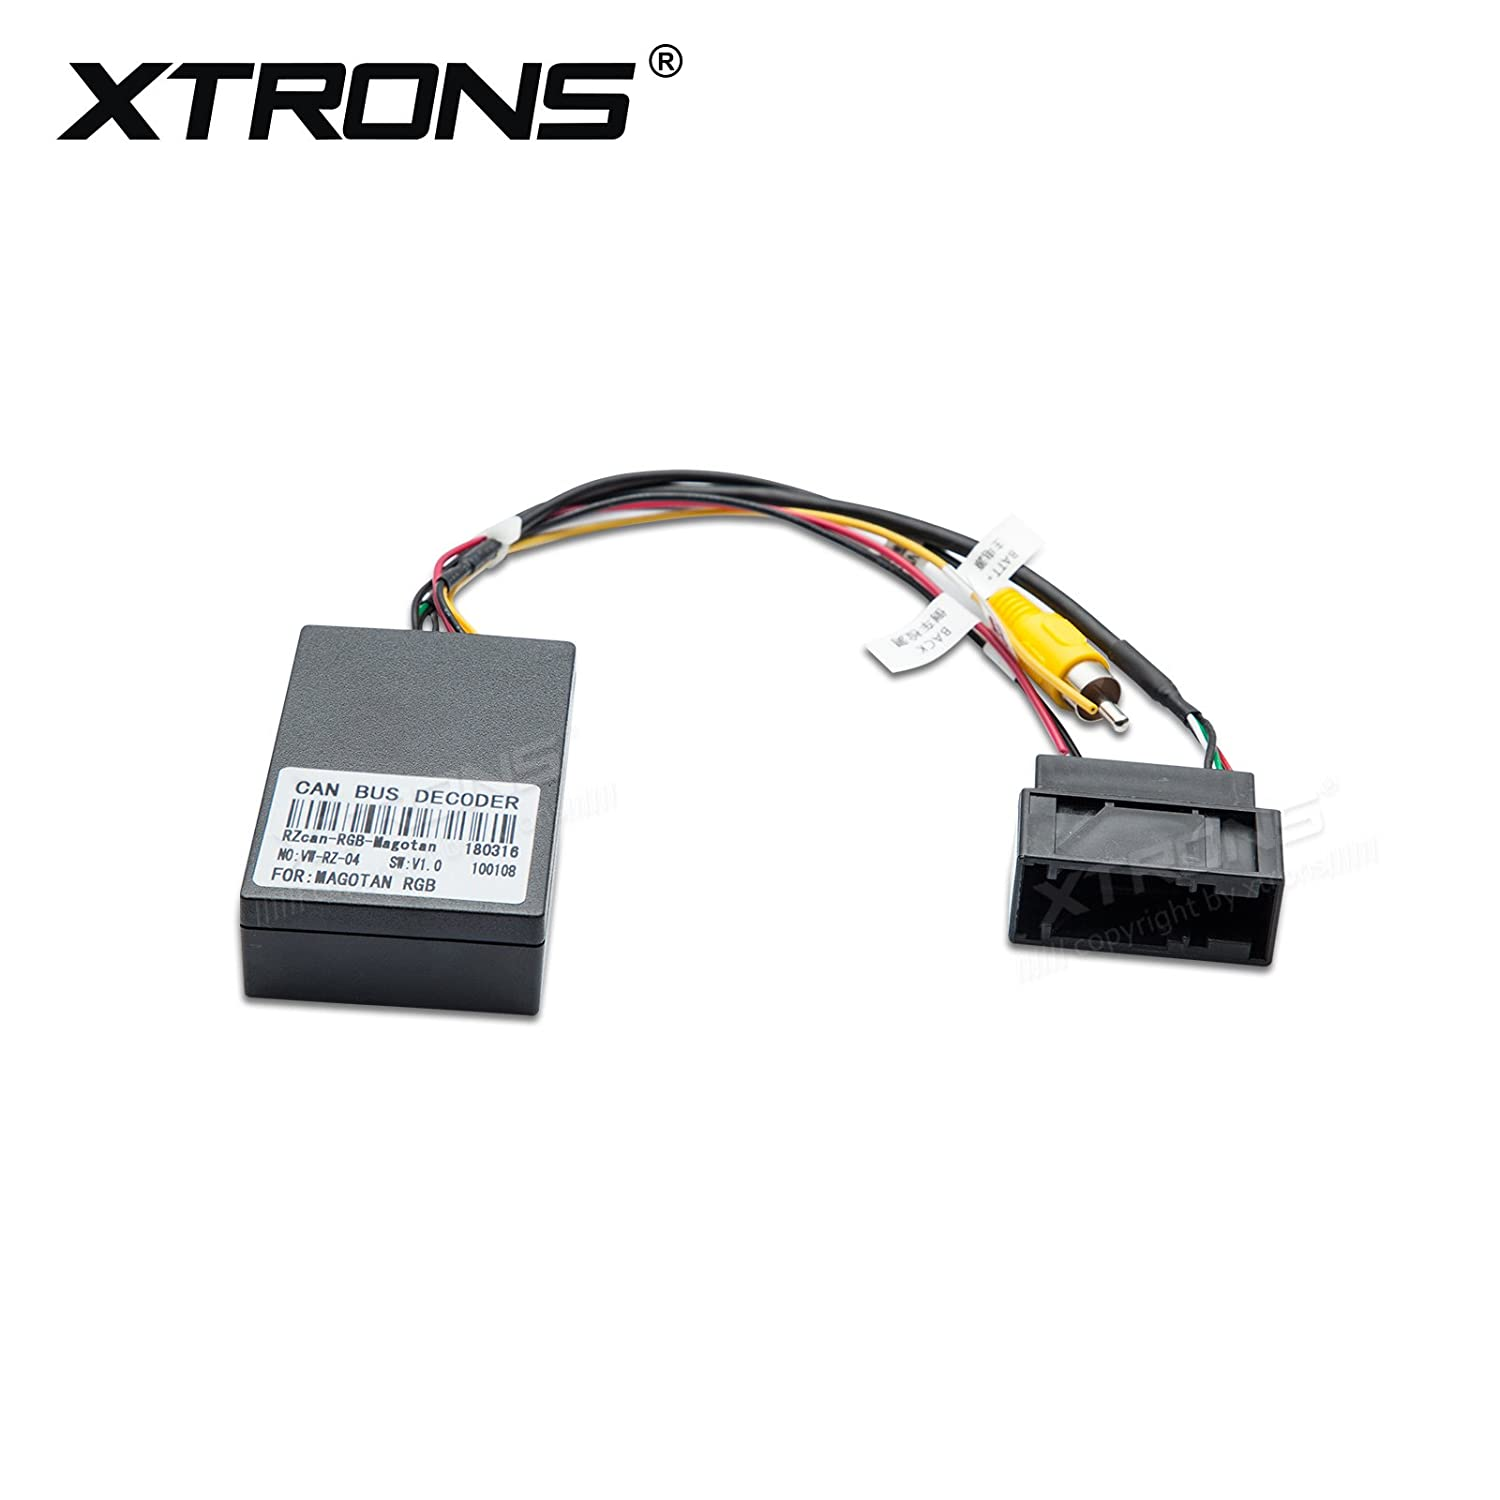 XTRONS Reversing Camera Decoder Box Adapter Converter for Car Stereo on audio wiring diagram, hdmi wiring diagram, hitch wiring diagram, smart wheel wiring diagram, radio wiring diagram, dvd wiring diagram, network wiring diagram, accelerometer wiring diagram, power wiring diagram, battery wiring diagram, dimensions wiring diagram, alarm wiring diagram, gps wiring diagram, electric step wiring diagram, cruise control wiring diagram, speakers wiring diagram, usb wiring diagram, cd player wiring diagram, ram wiring diagram, abs wiring diagram,